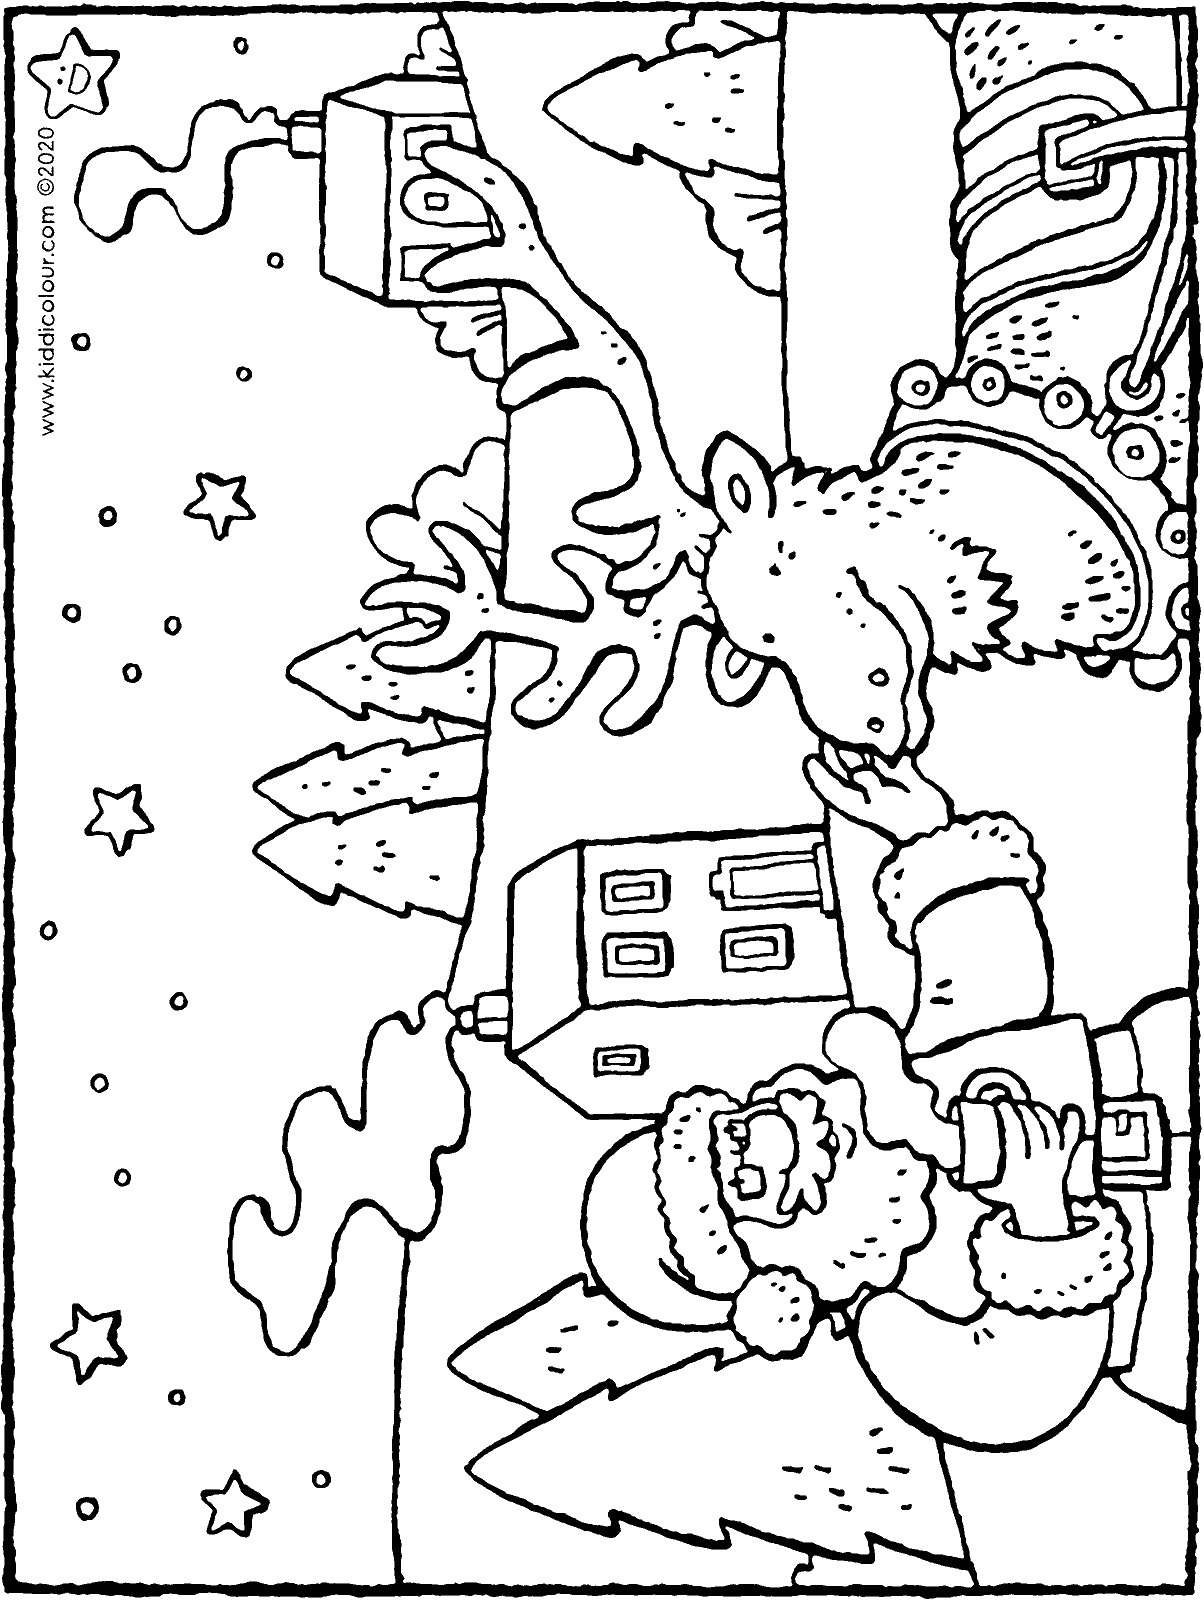 Father Christmas and his reindeer colouring page drawing picture 01H